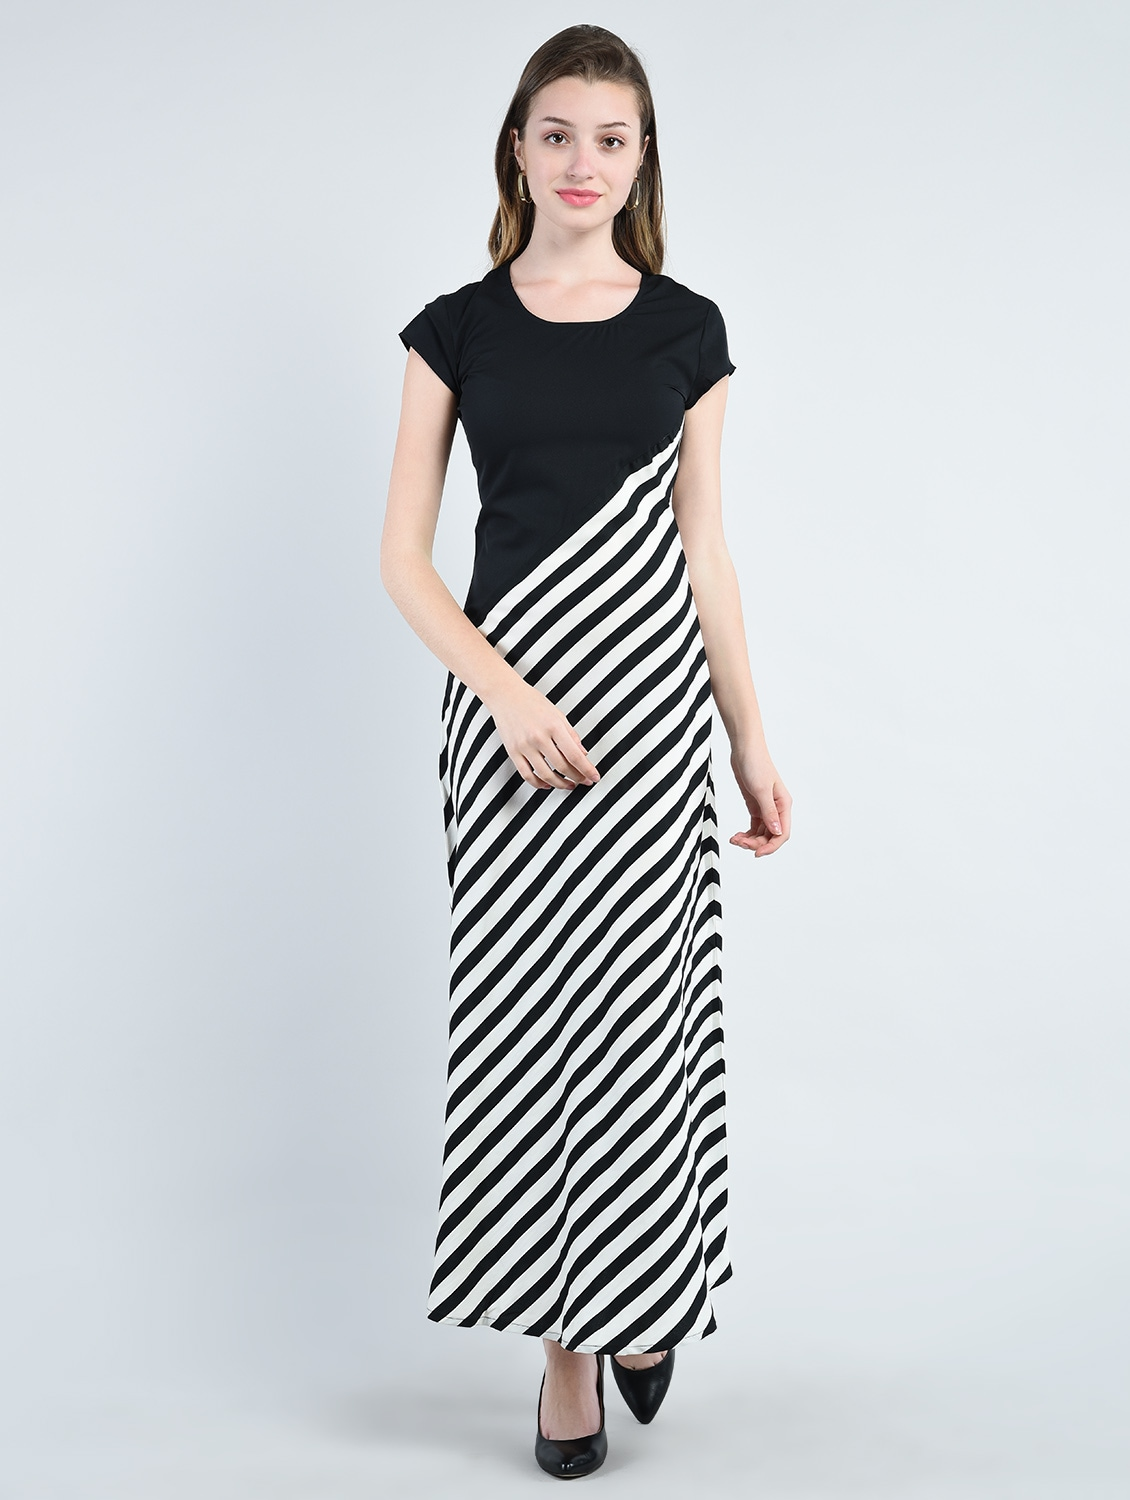 a2dbc227740ba Buy Black Striped Crepe Maxi Dress by Peptrends - Online shopping for  Dresses in India